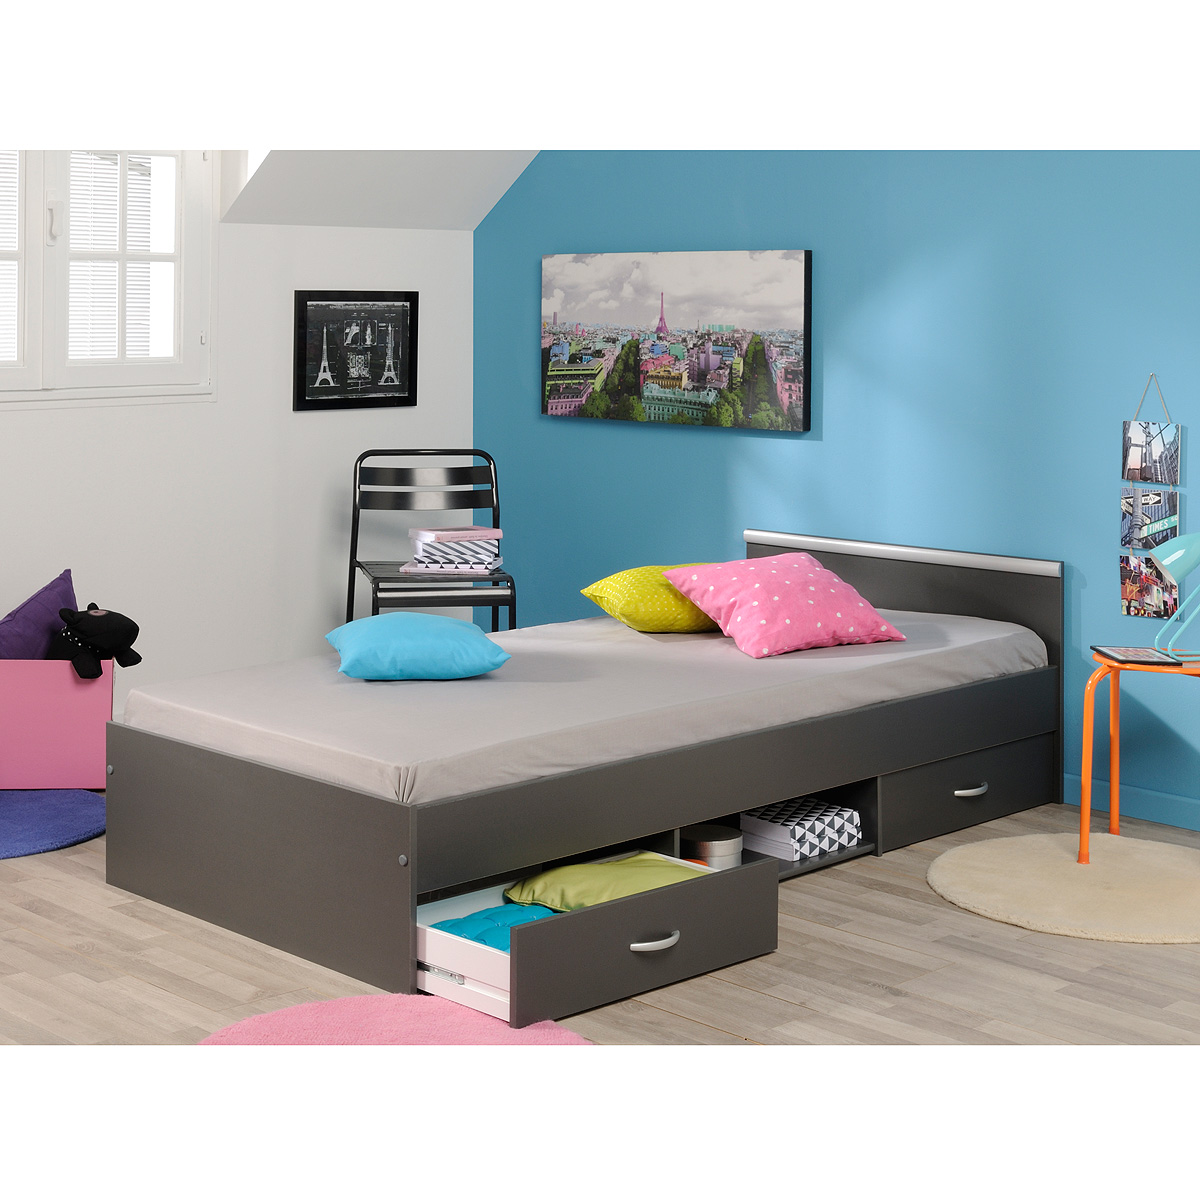 bett mega stauraumbett schlafzimmerbett kinderzimmerbett buche wei grau braun ebay. Black Bedroom Furniture Sets. Home Design Ideas